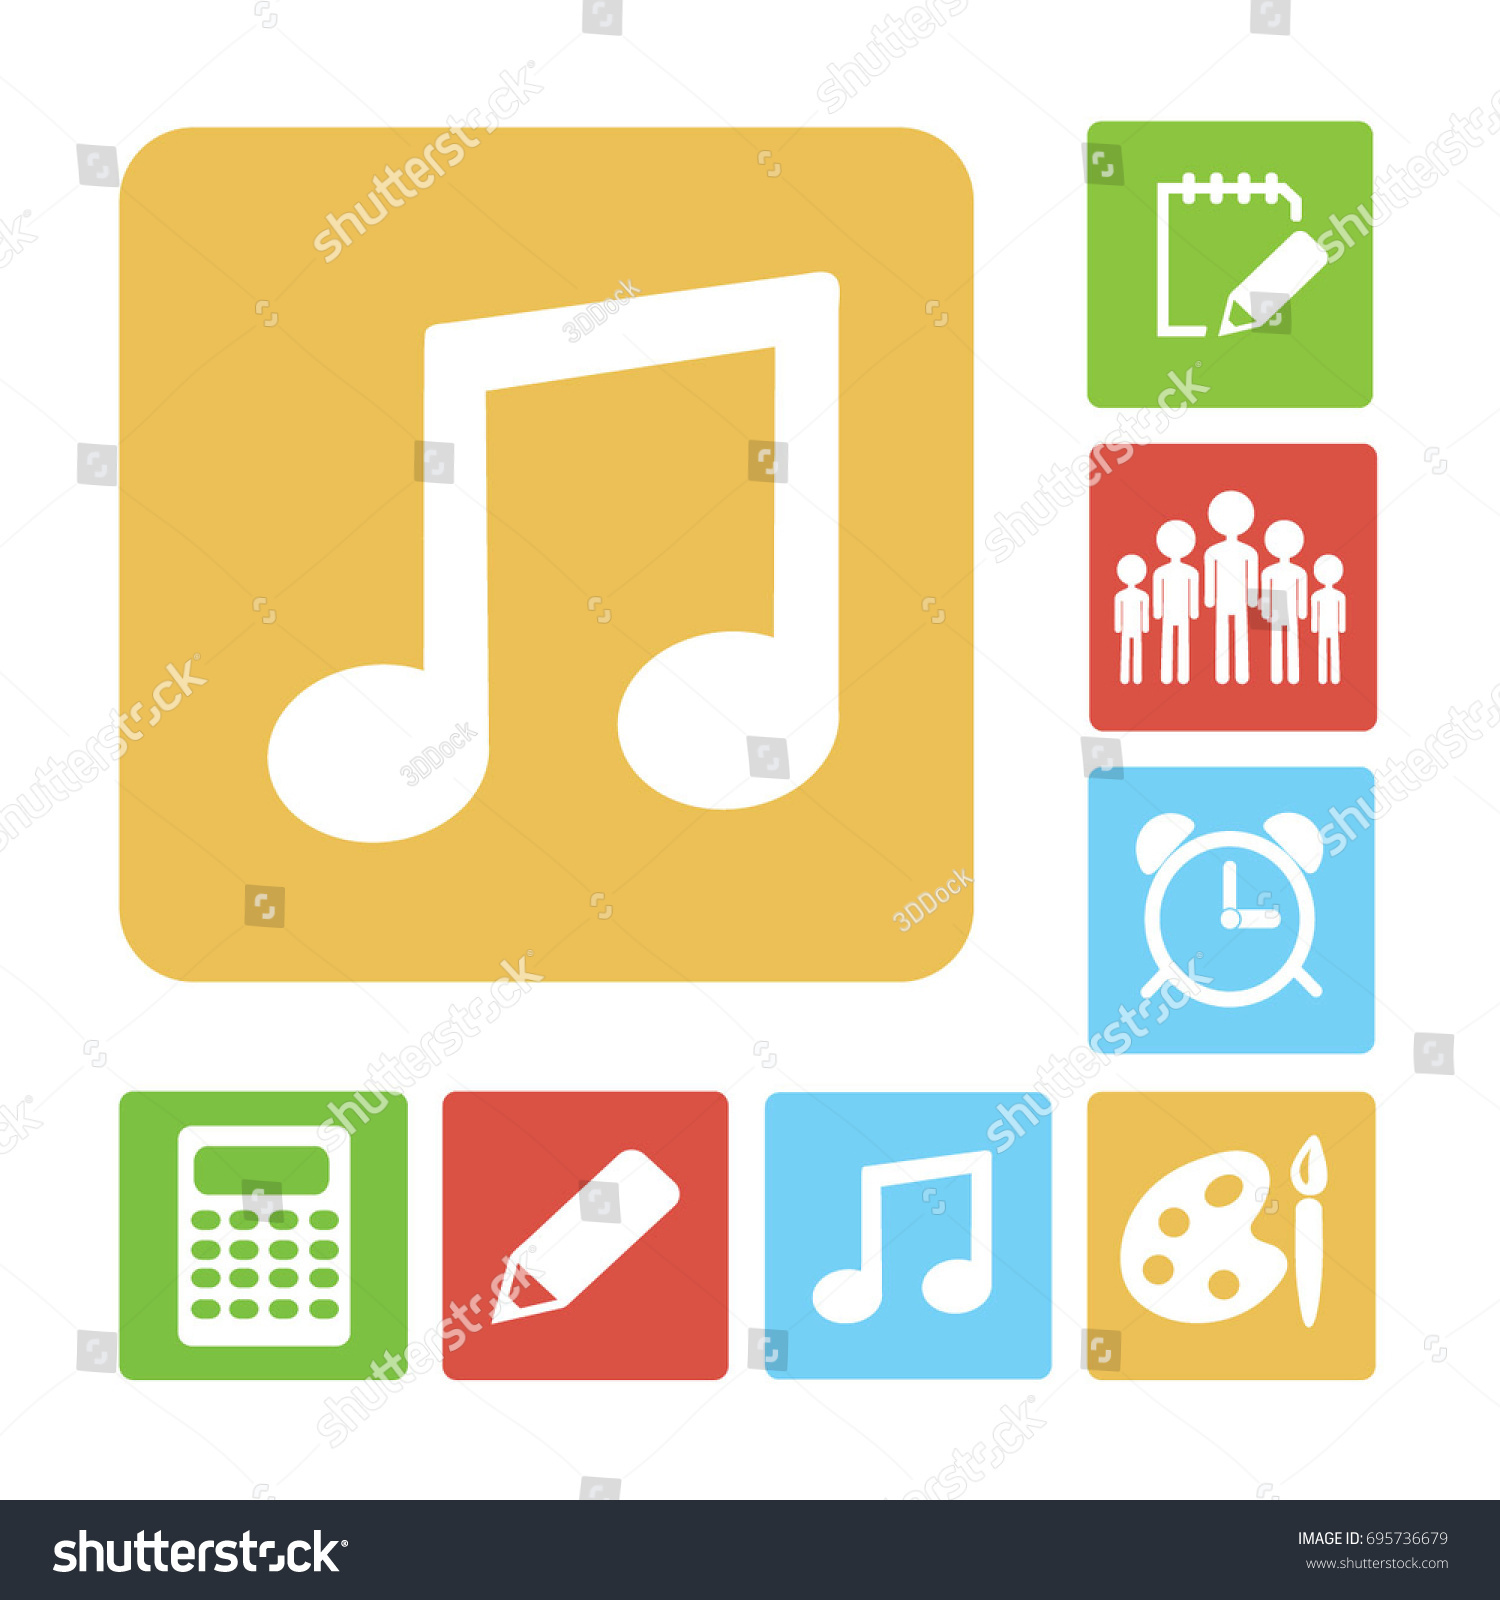 Musical Note Icon Flat Vector Illustration Stock Vector 695736679 ...